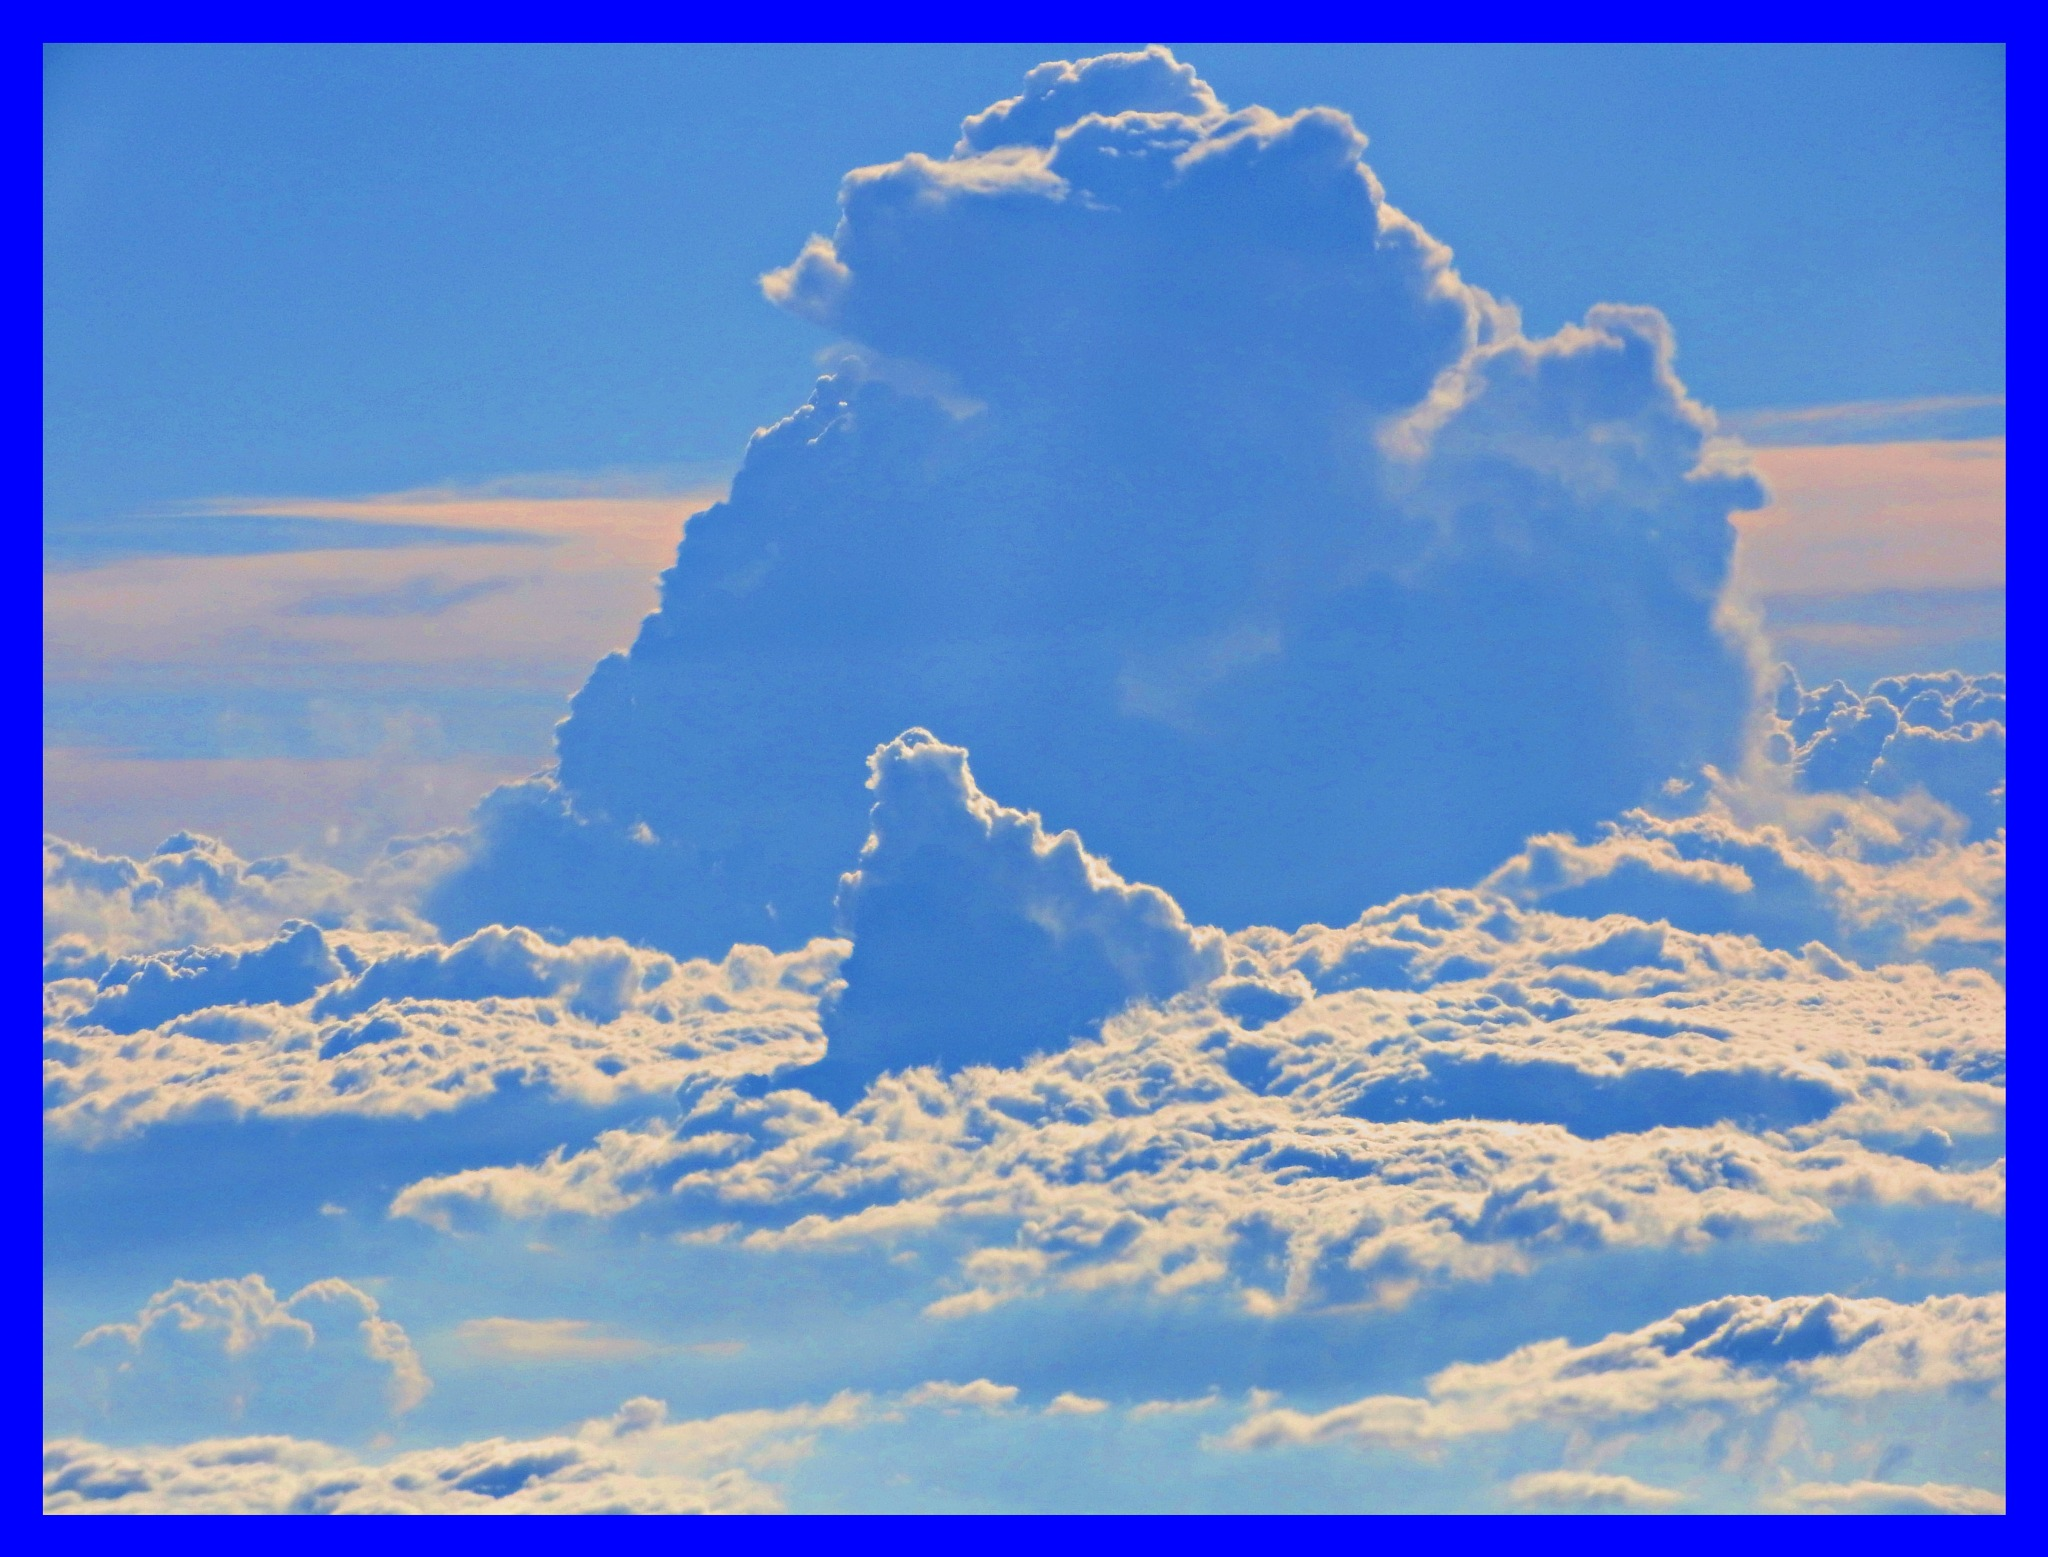 Clouds climbing higher by Paolo Paparazzi